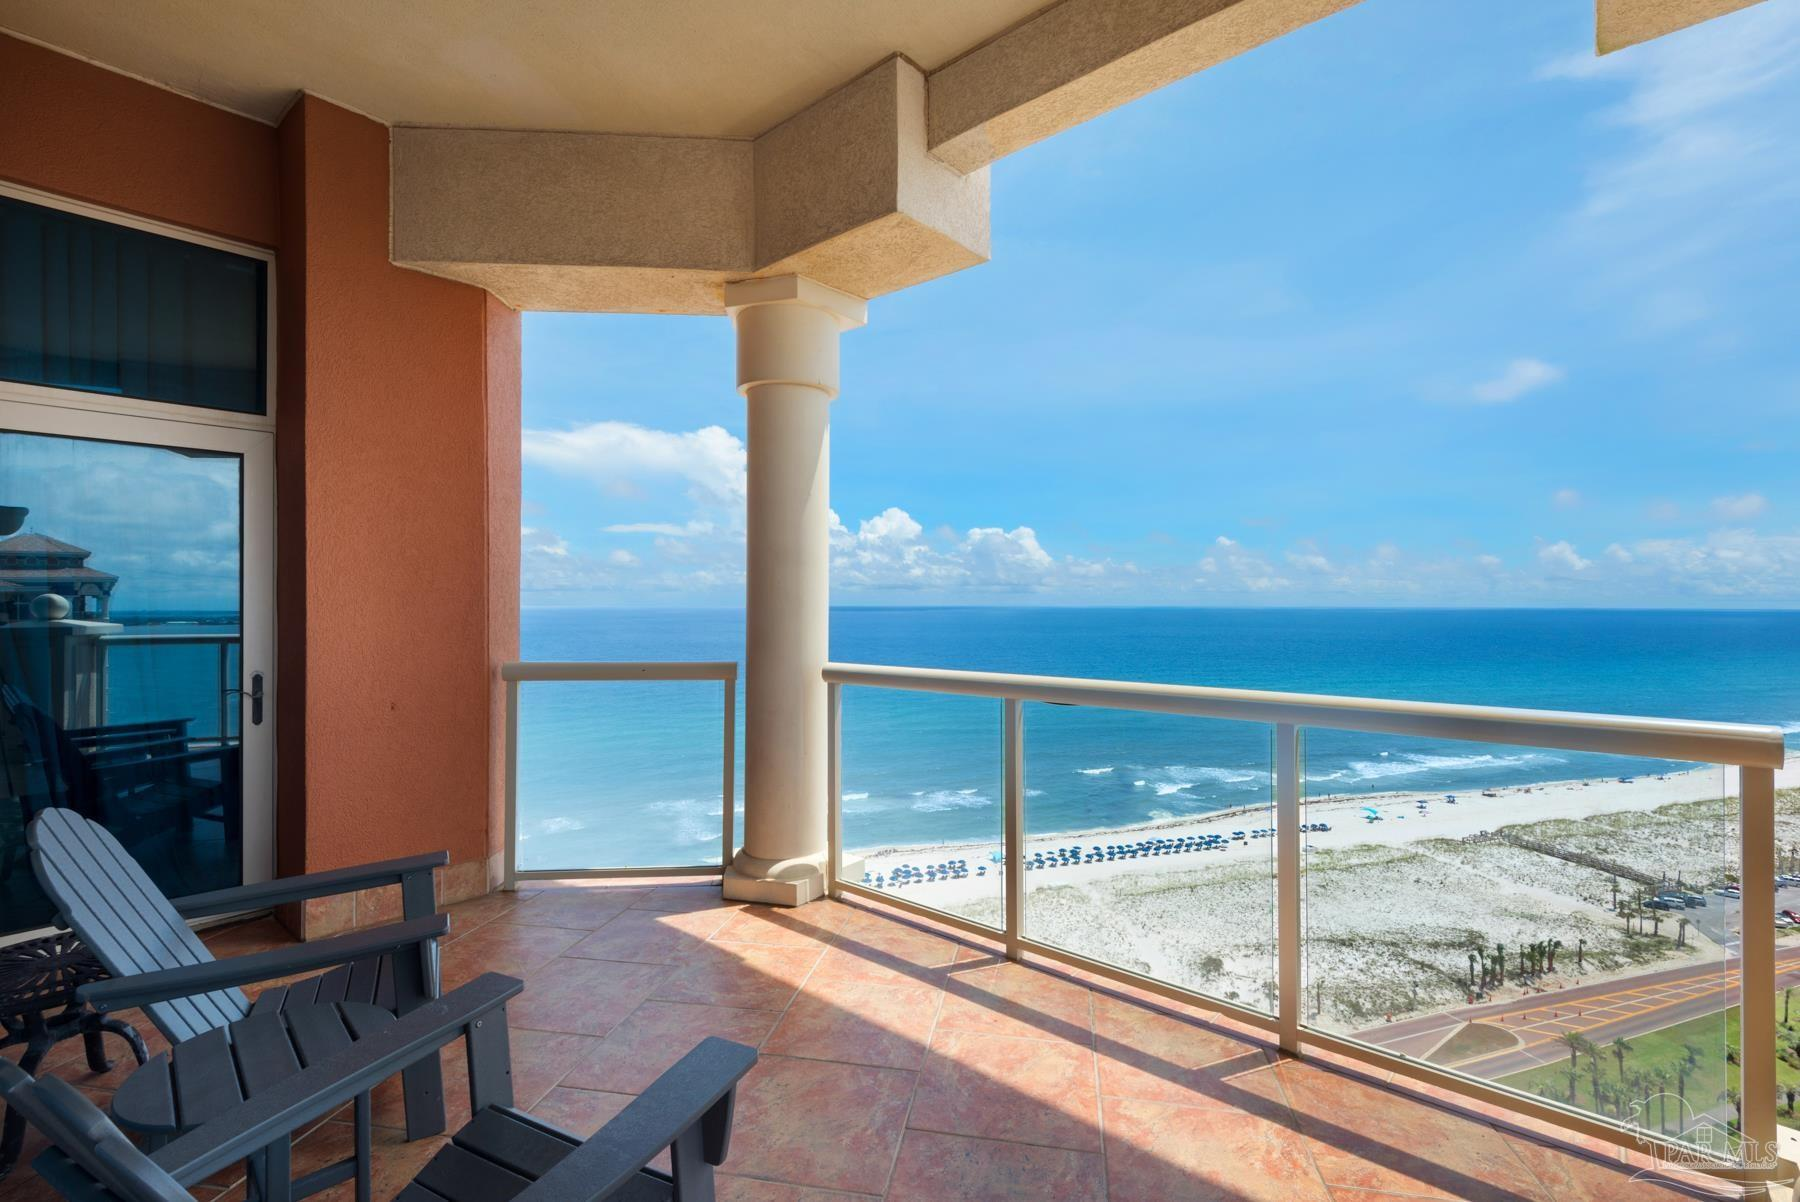 Don't miss this Tower 3 PENTHOUSE!! Beautifully decorated with Swarovski crystal chandelier. Portofino is one of the premier properties on Pensacola Beach. This unit has spectacular views of the Gulf of Mexico, & Intracoastal Waterways looking West. The Penthouse unit has all the upgrades with 11 ft ceilings instead of 9. New HVAC and newer furnishings. Portofino Resort and Spa offers two outdoor infinity edge pools with hot tubs, and an indoor Olympic size lap pool.  Each tower has a pool and hot tub. A great place to be on vacation every day while lounging at the pool deck with casual outside dining from the Grill and seasonal live entertainment. Inside the Spa & Lifestyle Center enjoy fine dining at Coastal restaurant, a convenient Market, Gift Shop, Concierge, 3 Spa Treatment Rooms and a full state-of-the-art Fitness Center. On site are 5 Rubico clay tennis courts and all the bikes and boating activity rentals for a really fun day at the Beach. Don't miss this opportunity to own a Penthouse unit in the most desired Tower on property.